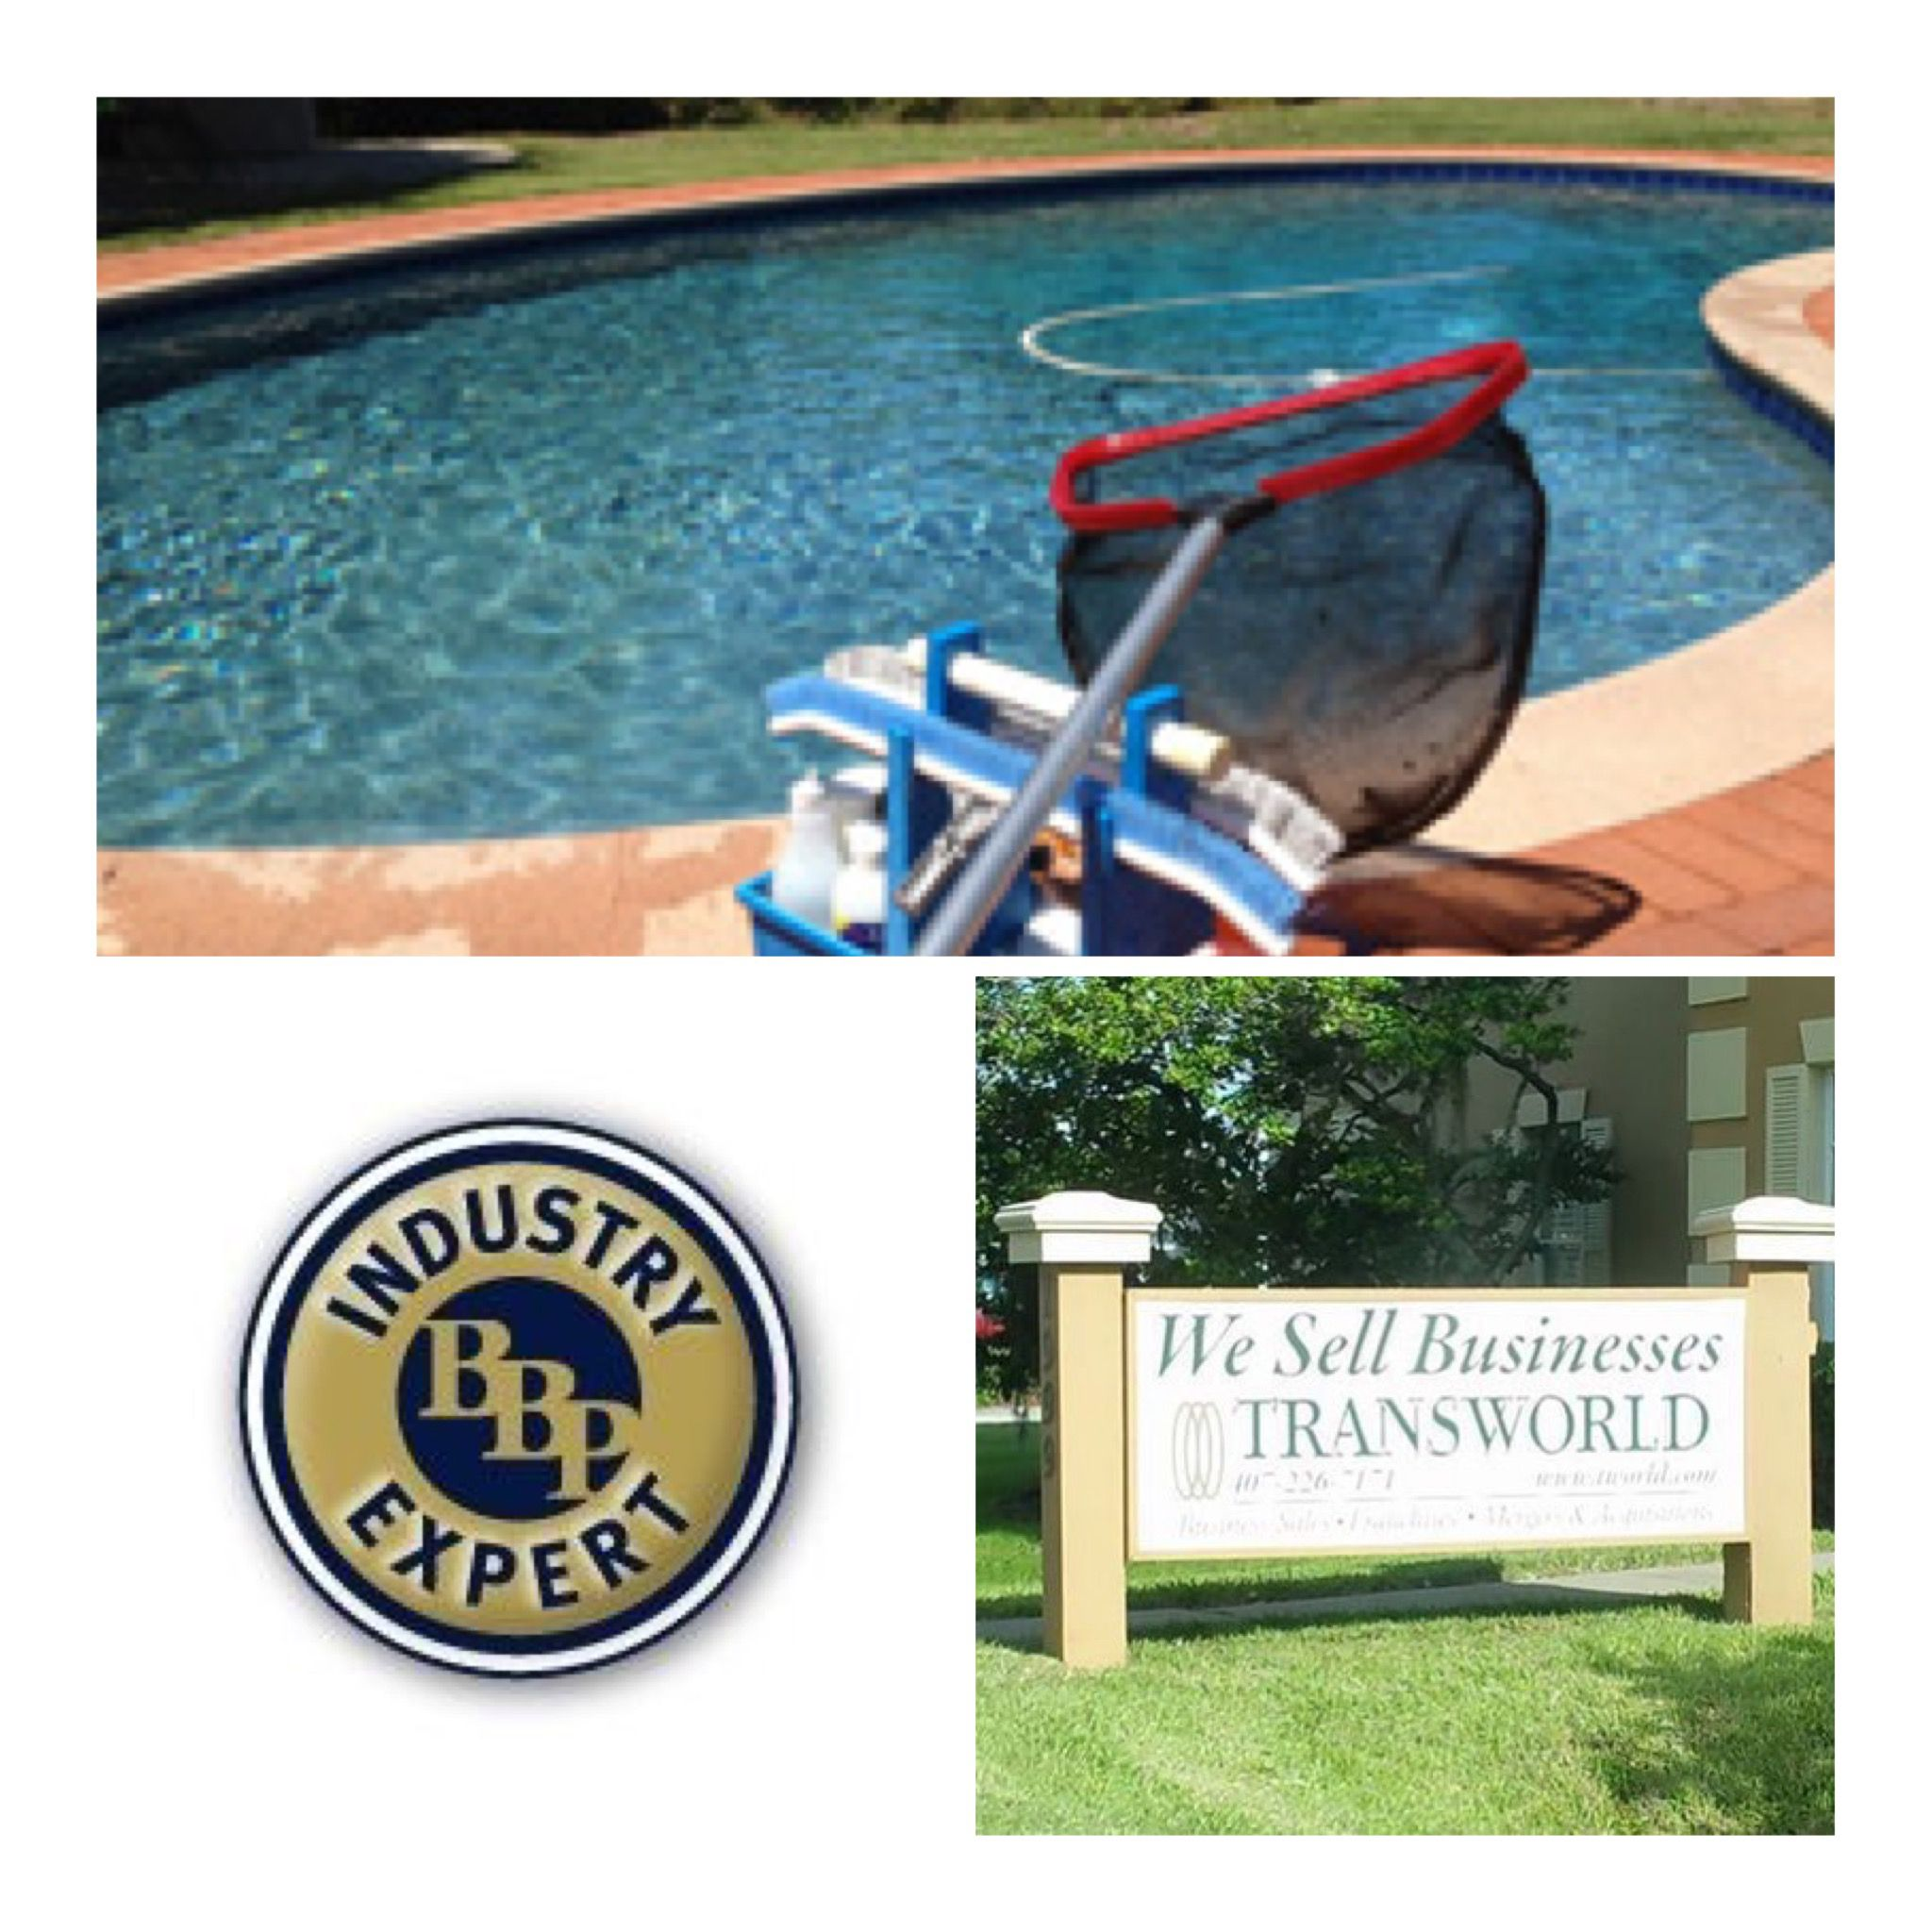 Pool Services Are One Of The Single Most Profitable Companies